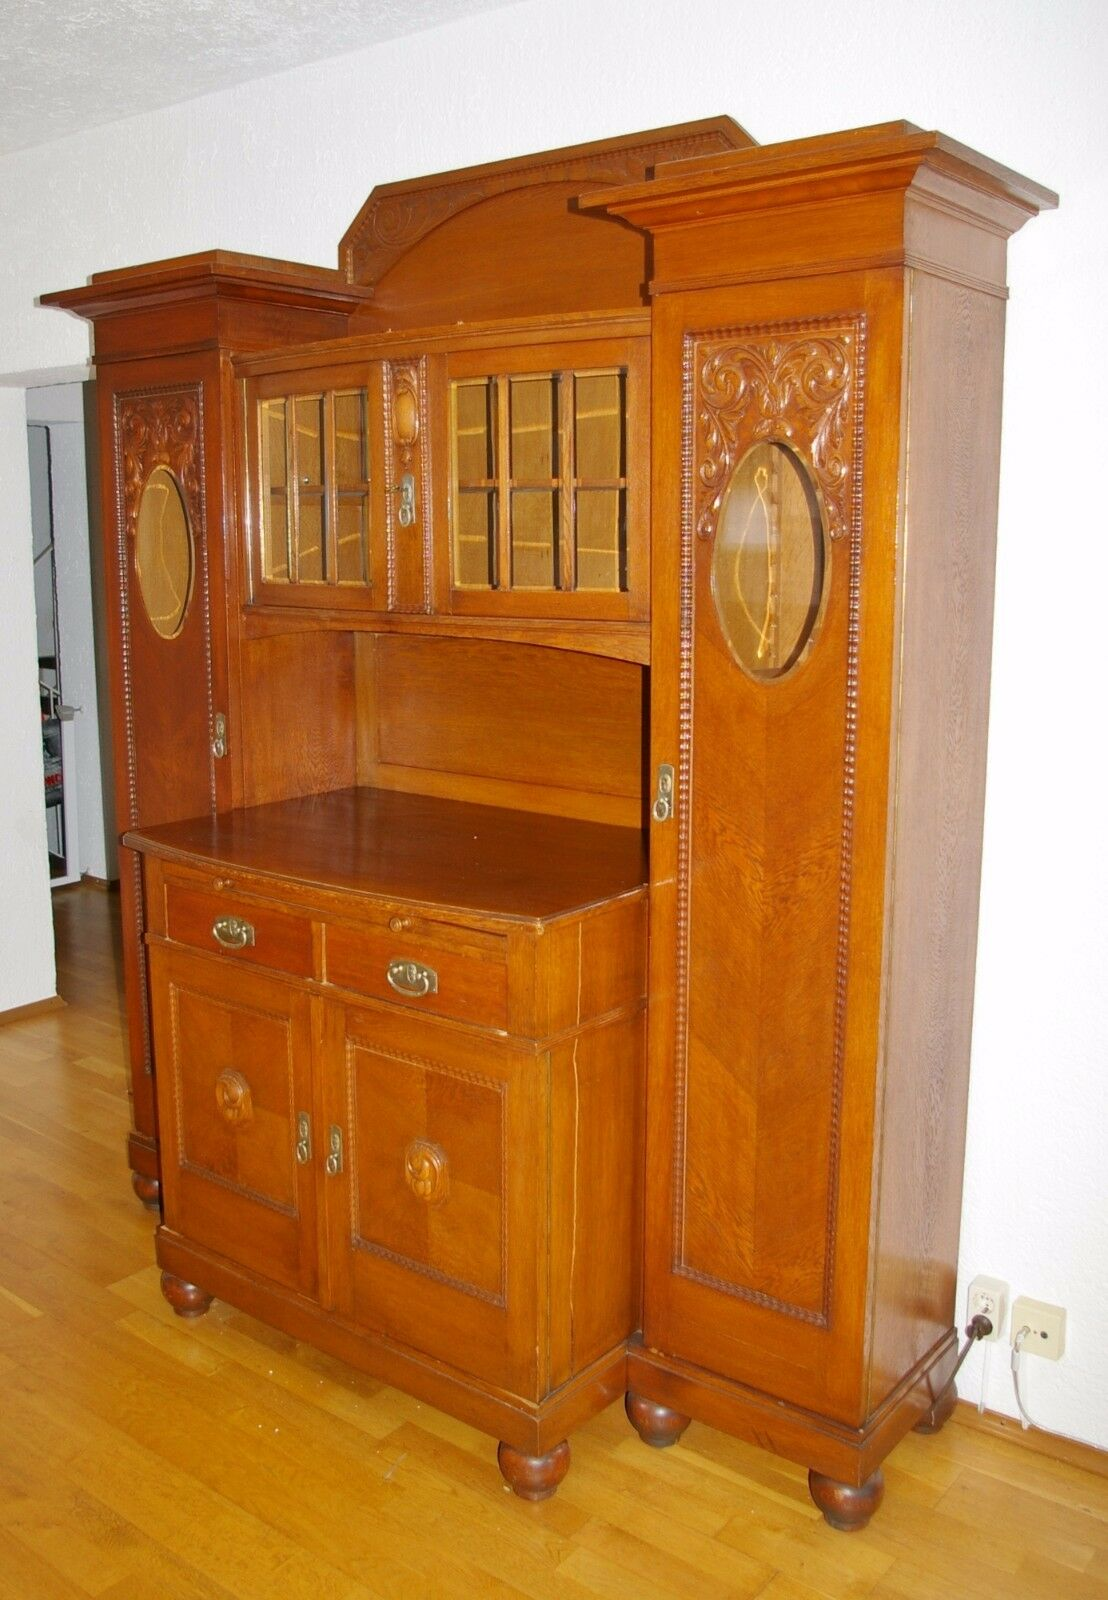 turm buffet kredenz schrank aus eichen holz ca 1920 eur 790 00 picclick de. Black Bedroom Furniture Sets. Home Design Ideas